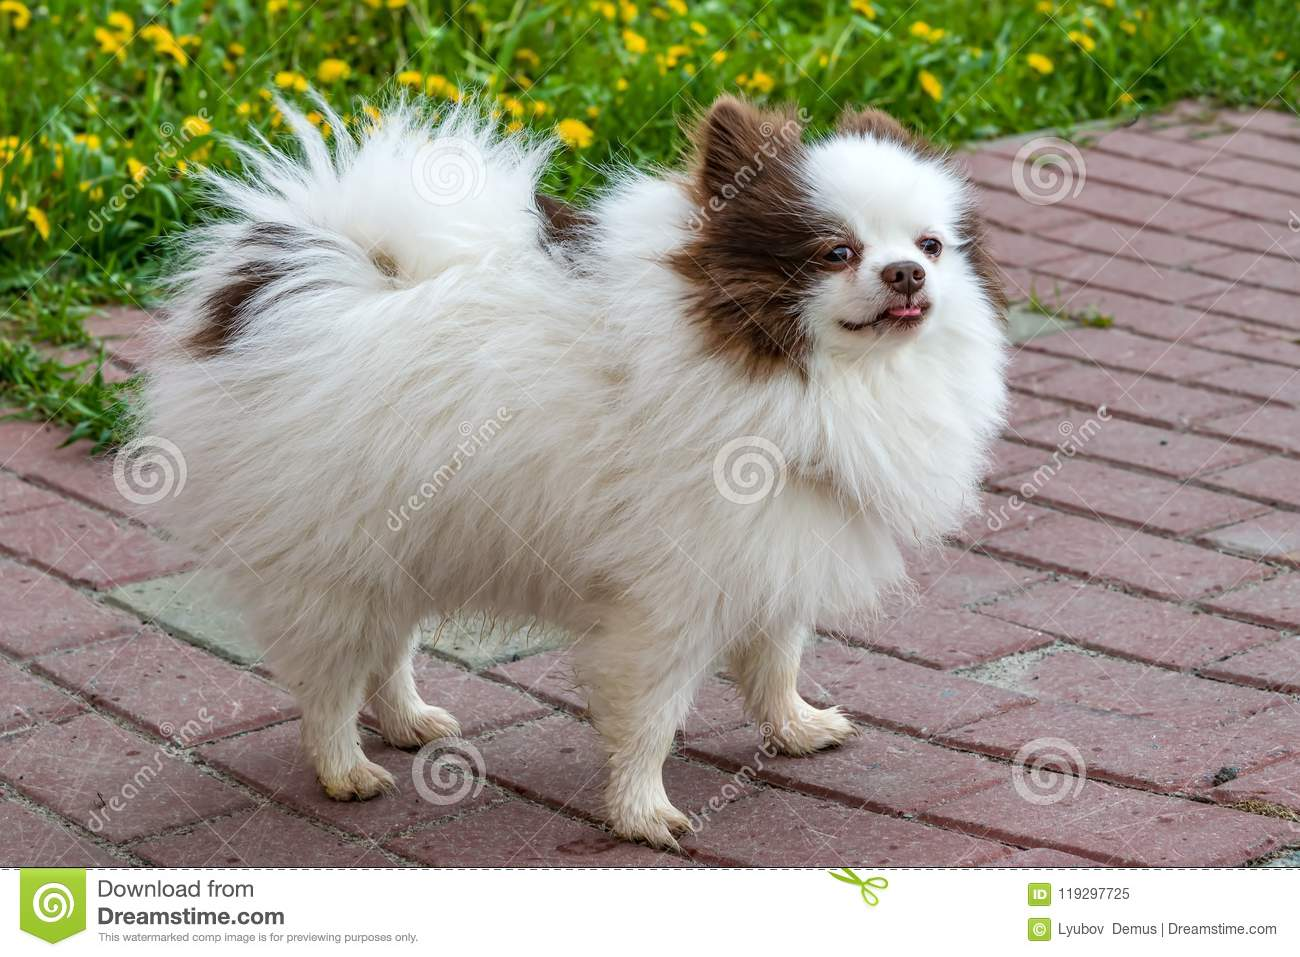 Pet Cute Fluffy Pomeranian Breed Dog White With Brown Spots Stock